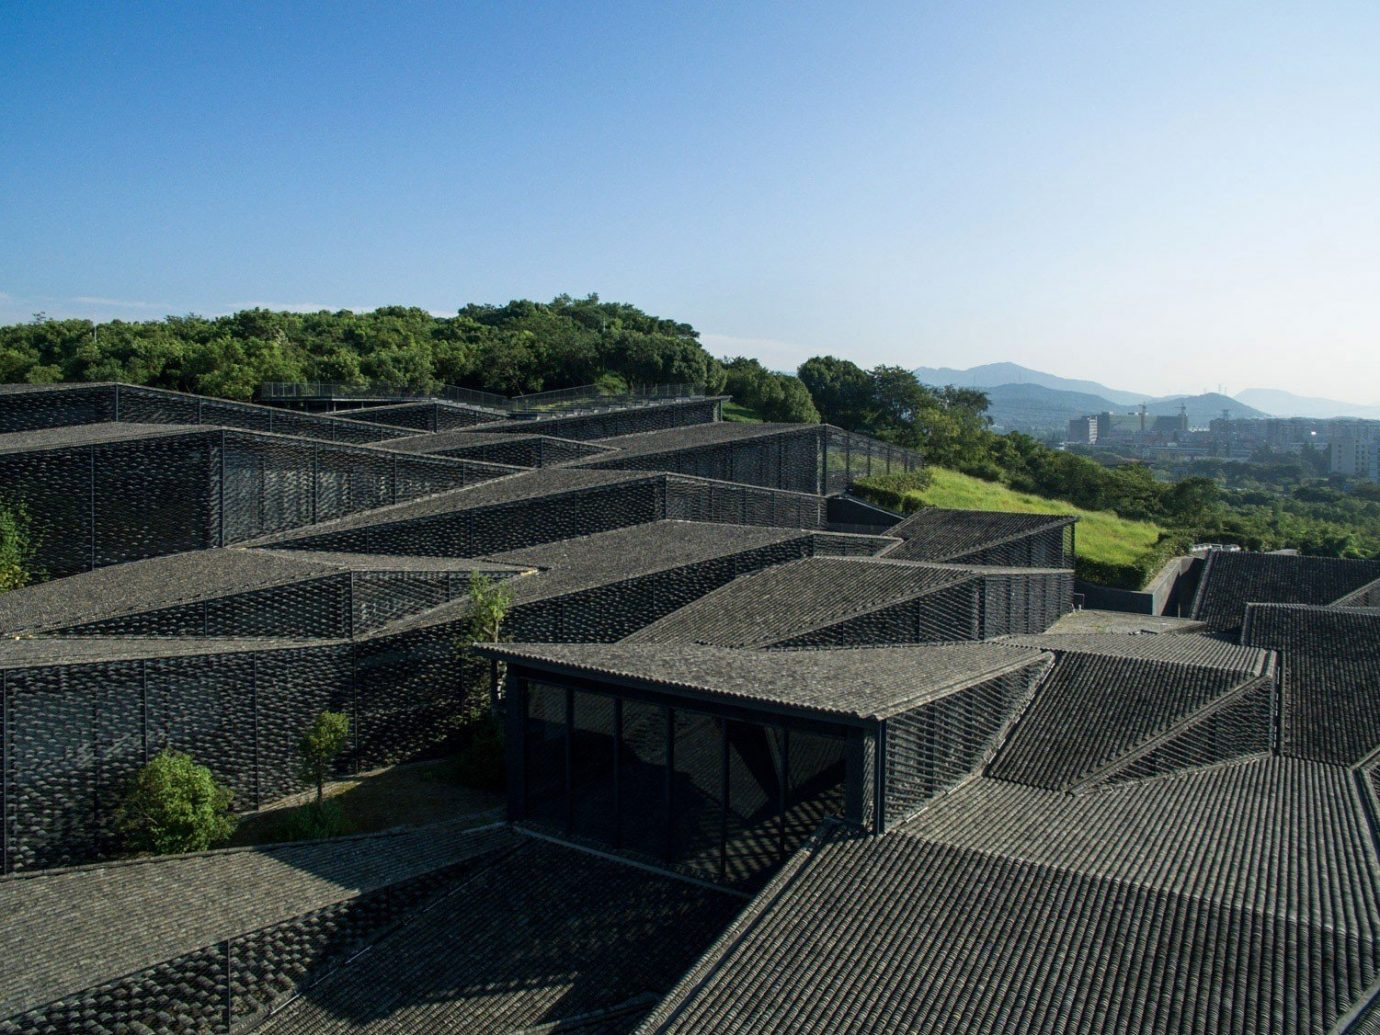 Trip Ideas sky outdoor structure wall Architecture roof aerial photography agriculture stadium outdoor structure reservoir amphitheatre day